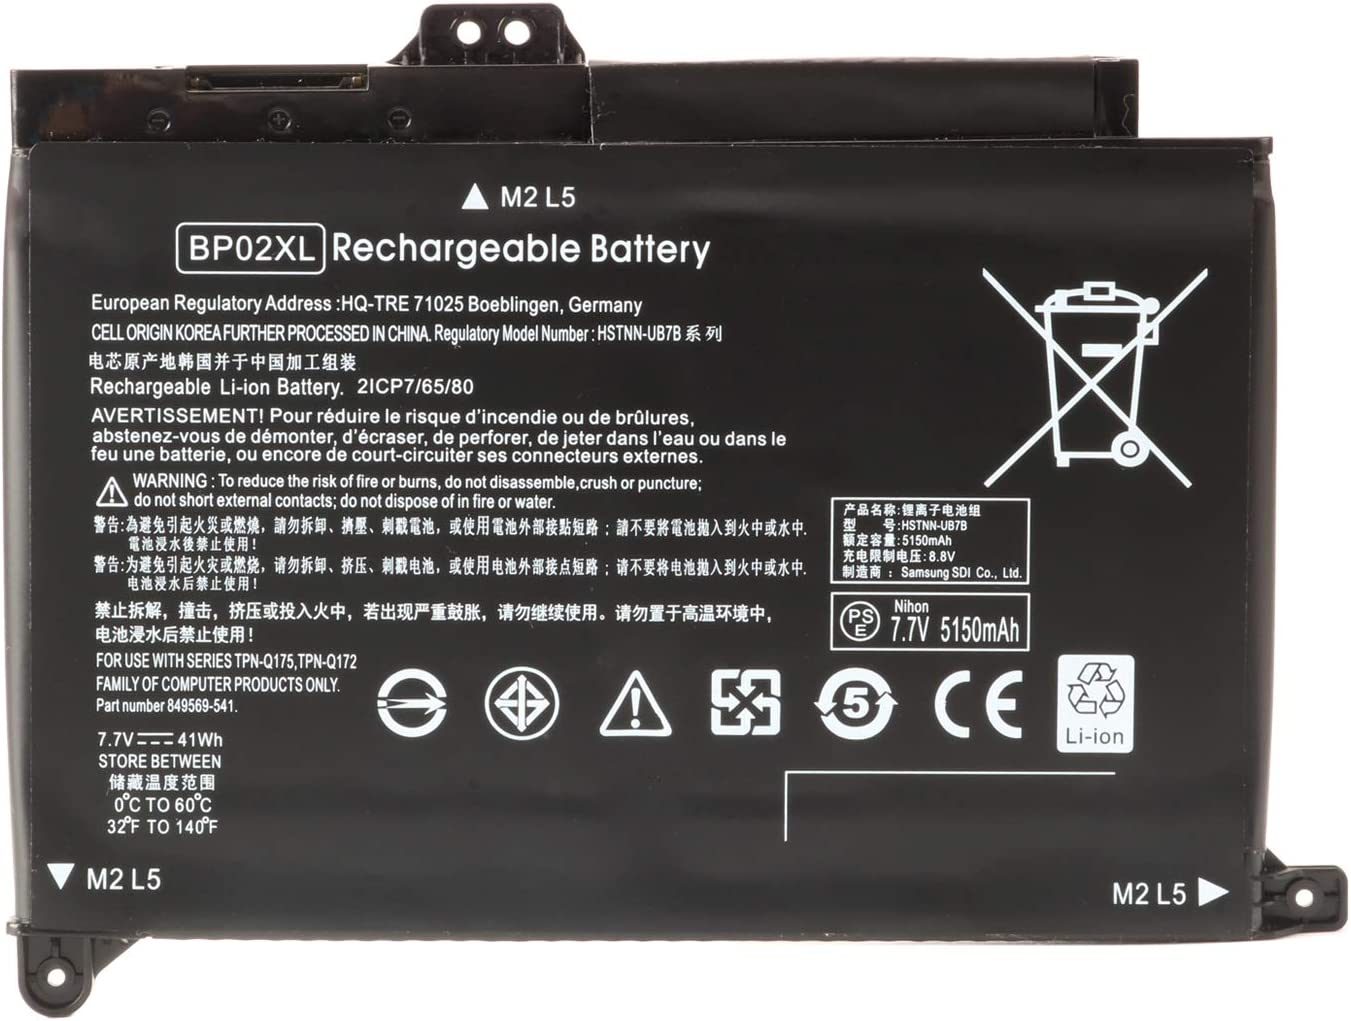 BP02XL 849909-850 Battery for HP Pavilion Notebook PC 15 Series 15-AU000 15-AU010WM 15-AU018WM 15T-AW000 15Z-AW000 15-AU063CL 15-AU091NR 15-AU010WM 15- AU123CL 15-AW068NR Notebook Battery